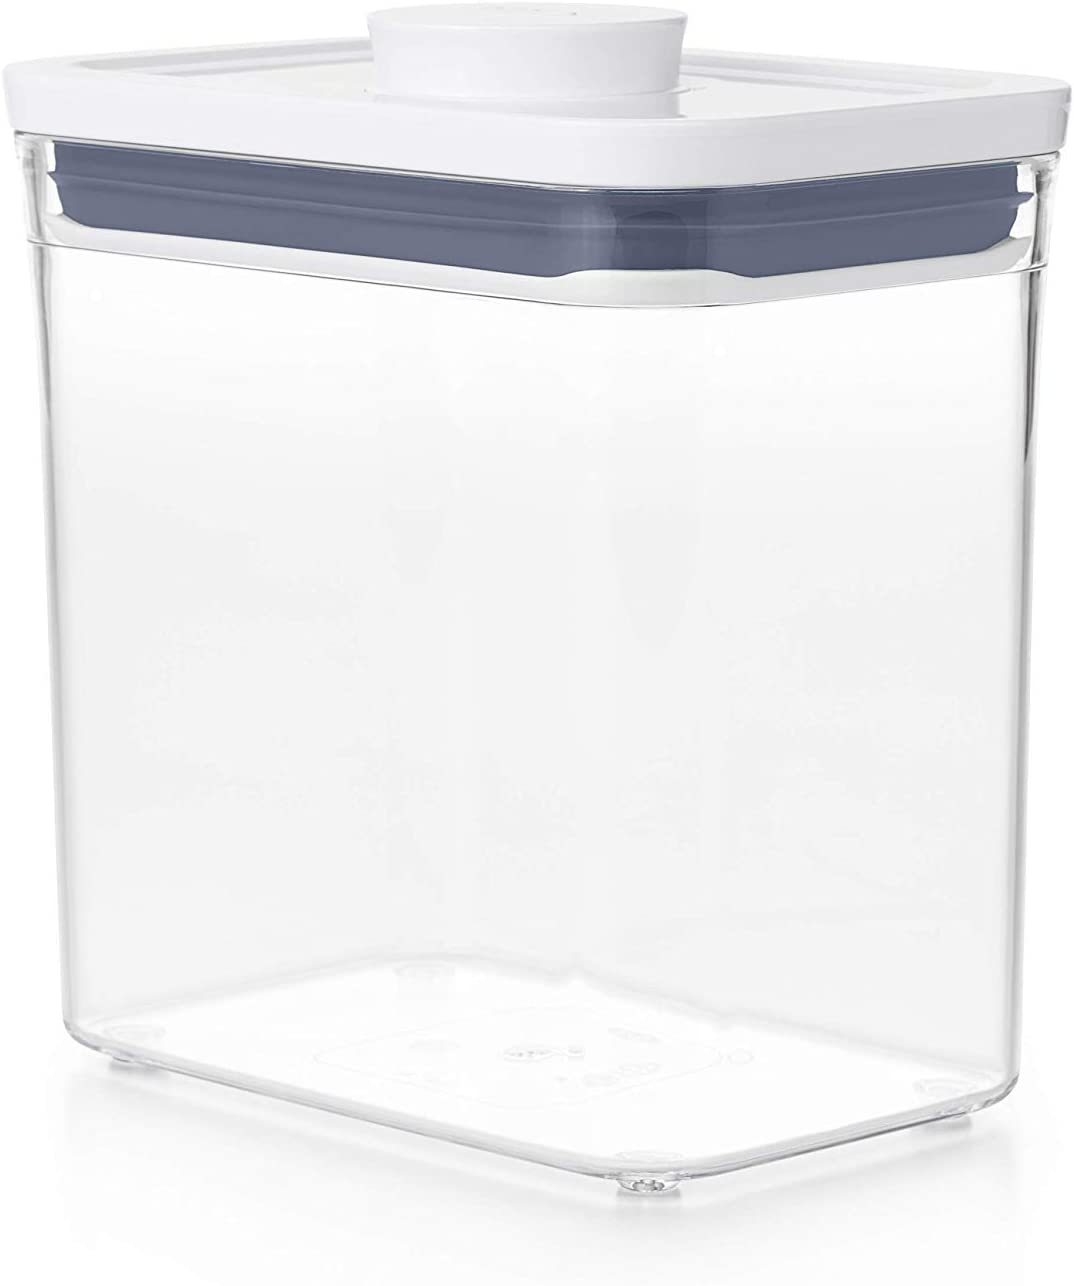 OXO GoodGrips POP Container - Airtight Food Storage - 1.7 Qt Rectangle (Set of 4) for Coffee and More